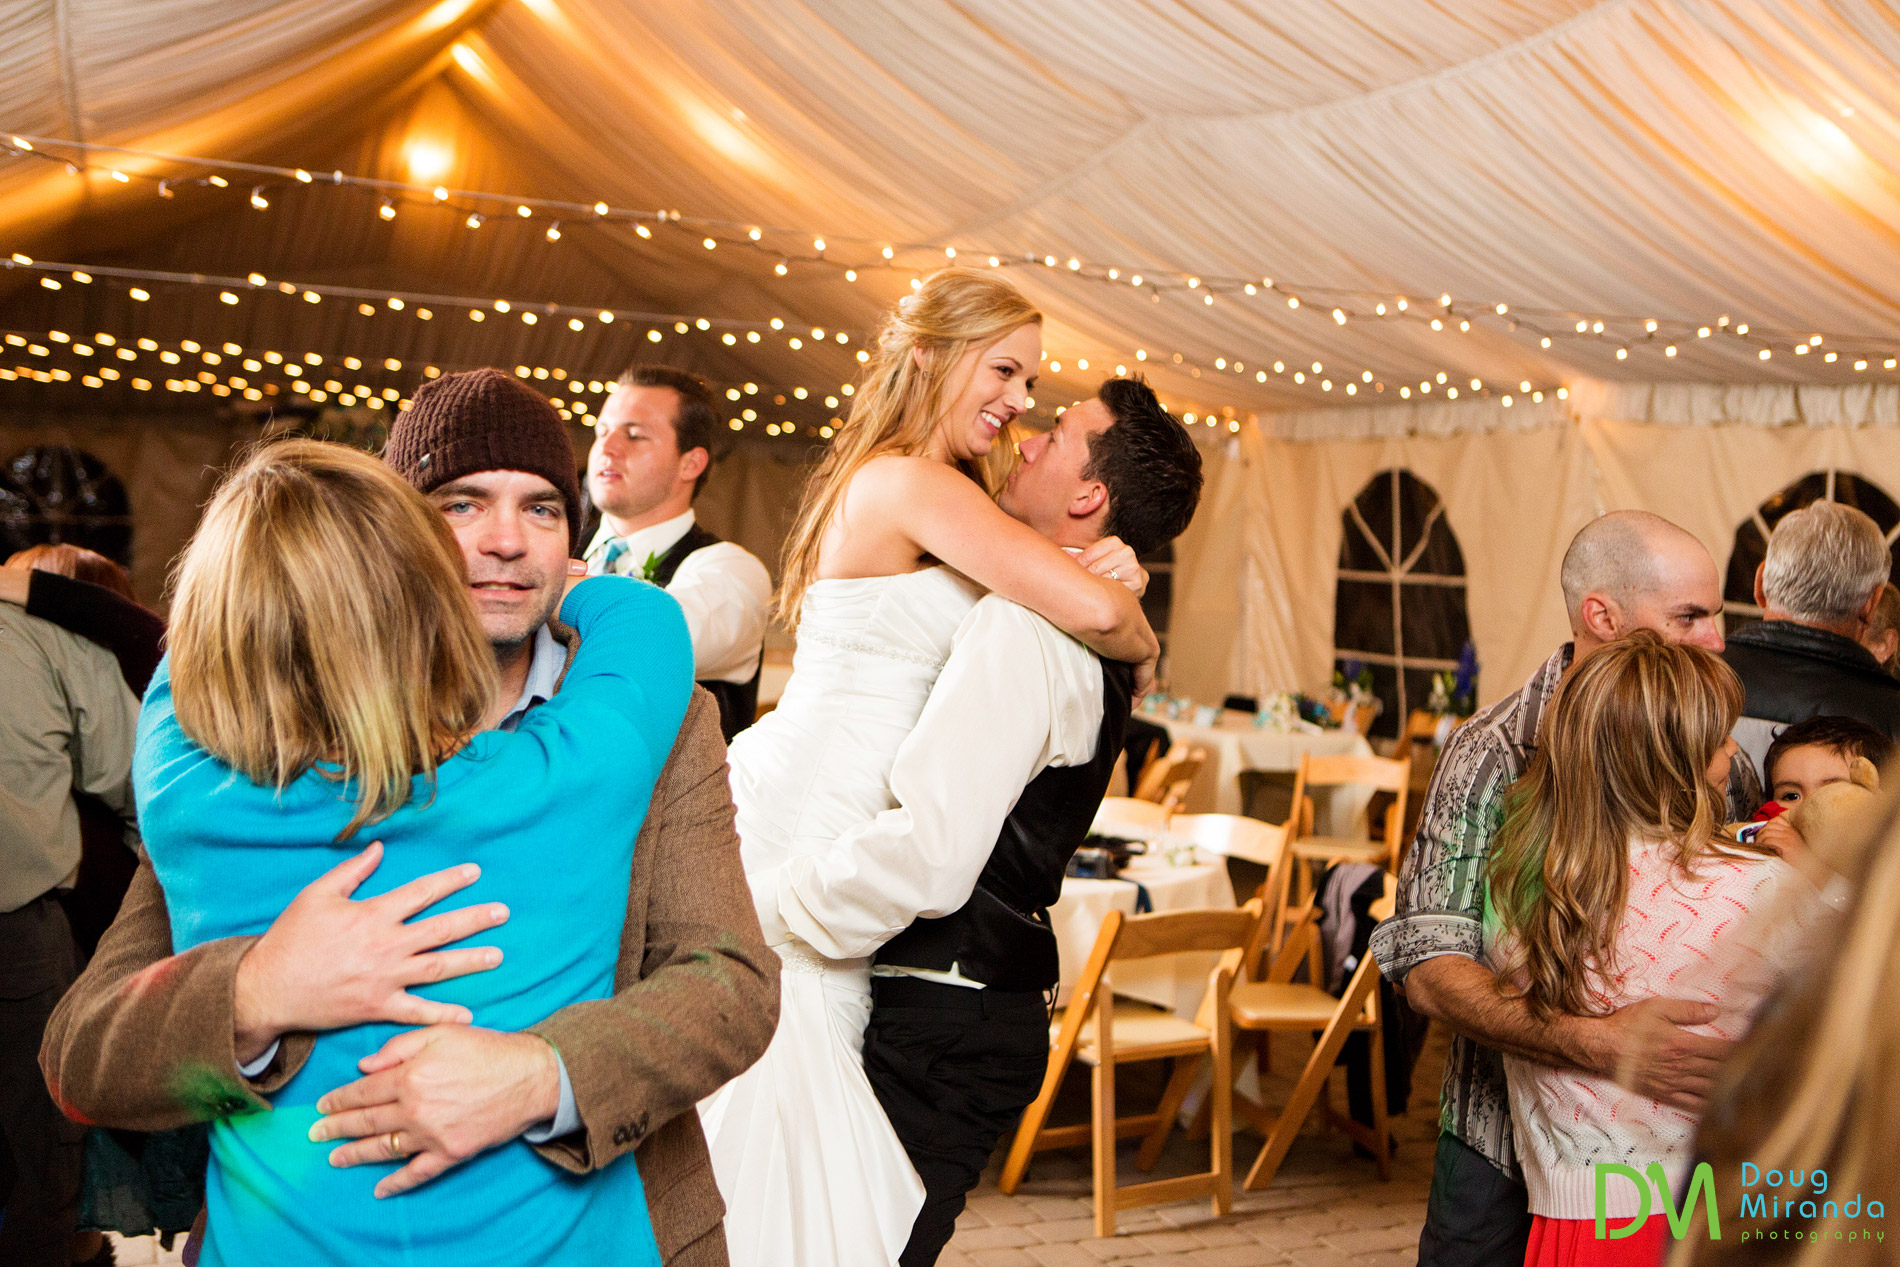 Dancing the night away to stay warm on a rainy wedding night.